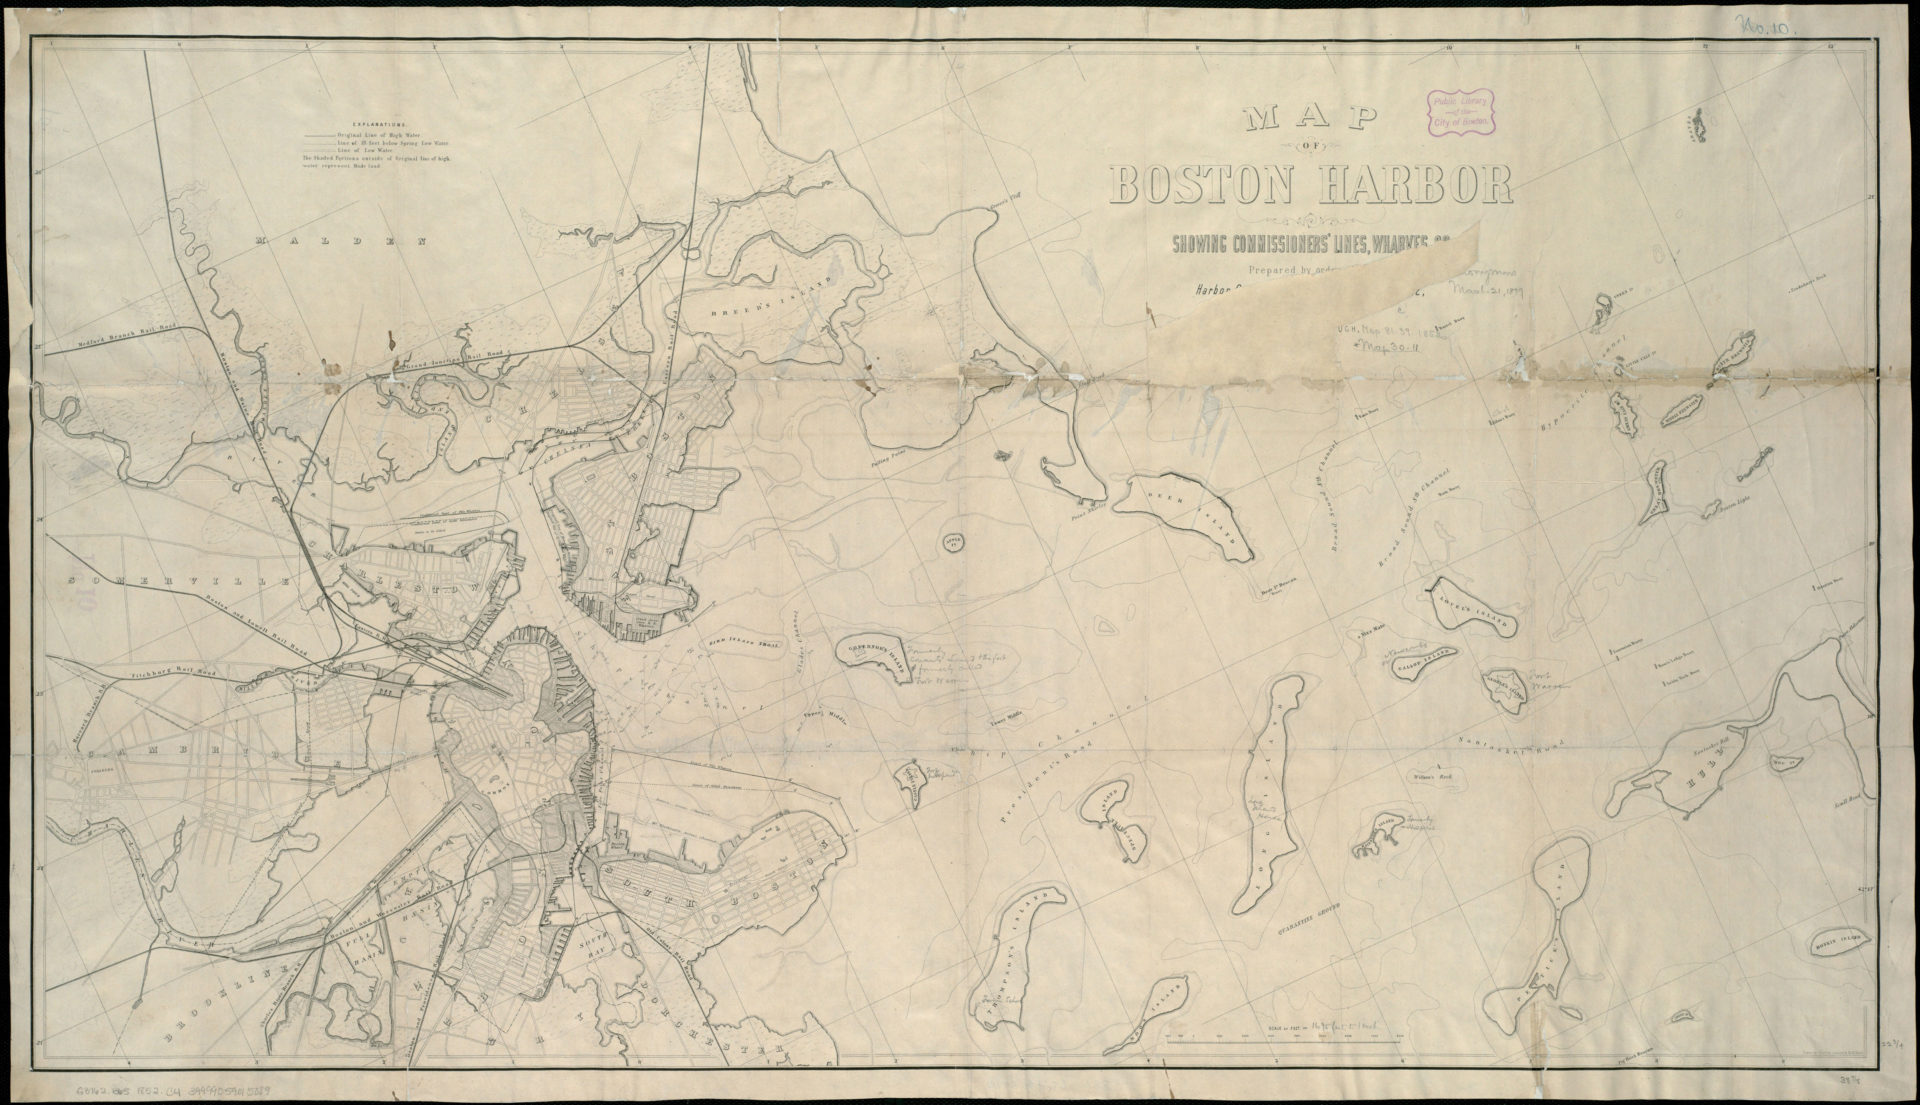 Caption: Joint Standing Committee on Boston Harbor, Map of Boston Harbor: showing commissioners' lines, wharves &c. (1852). (Courtesy the Muriel G. and Norman B. Leventhal Family Foundation)